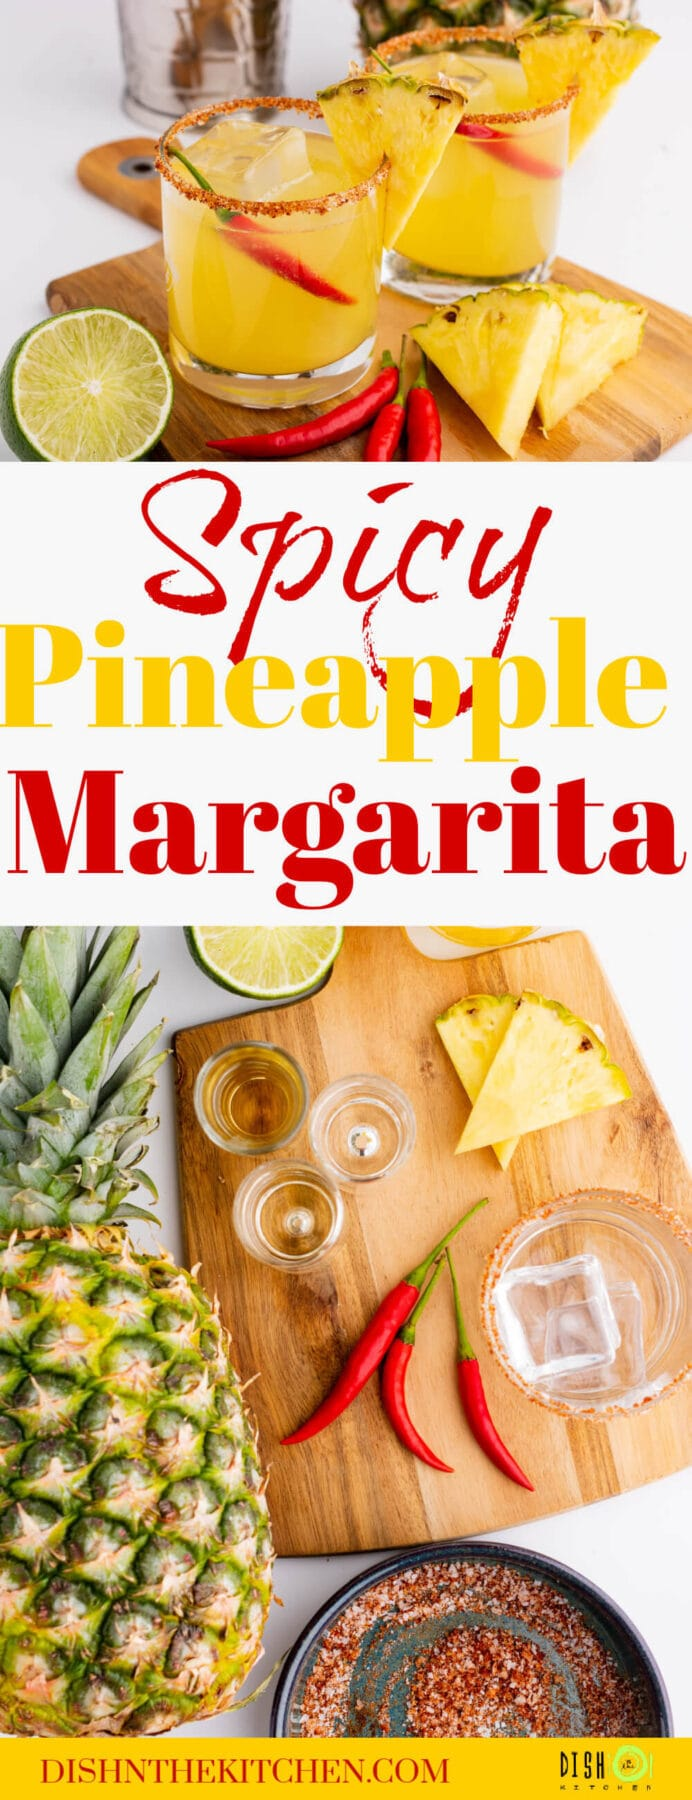 Pinterest image for a spicy pineapple margarita showing the ingredients used and two finished cocktails.